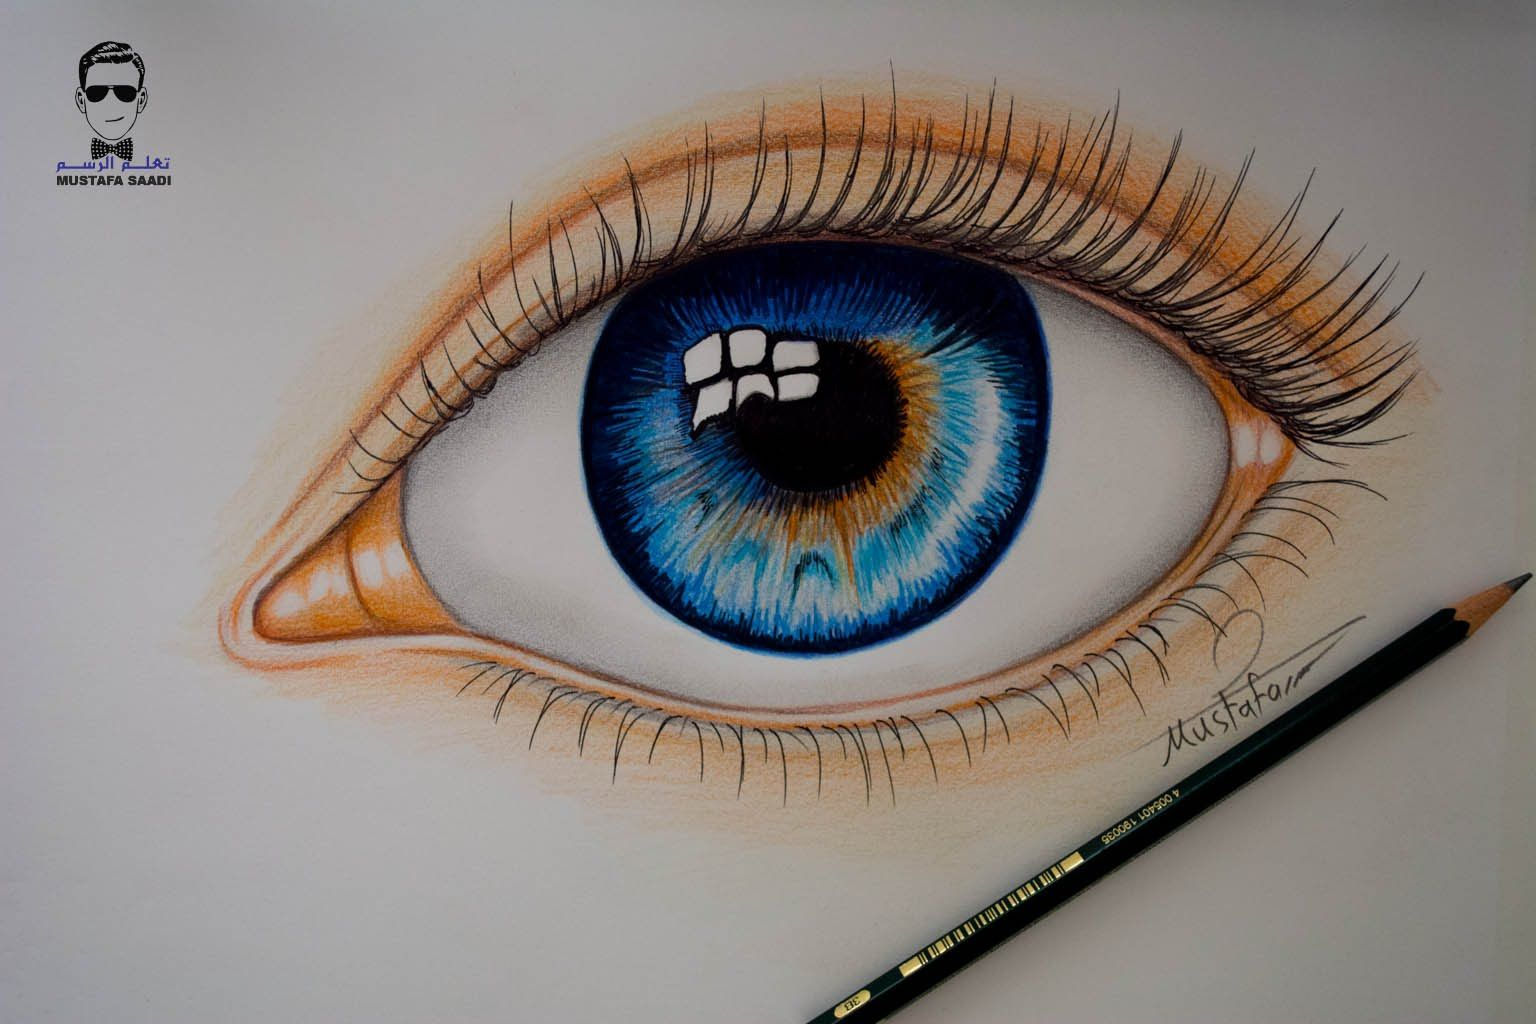 تعلم رسم العين بالالوان الخشبية How To Draw Realistic Eye Eye Drawing Realistic Drawings Drawings